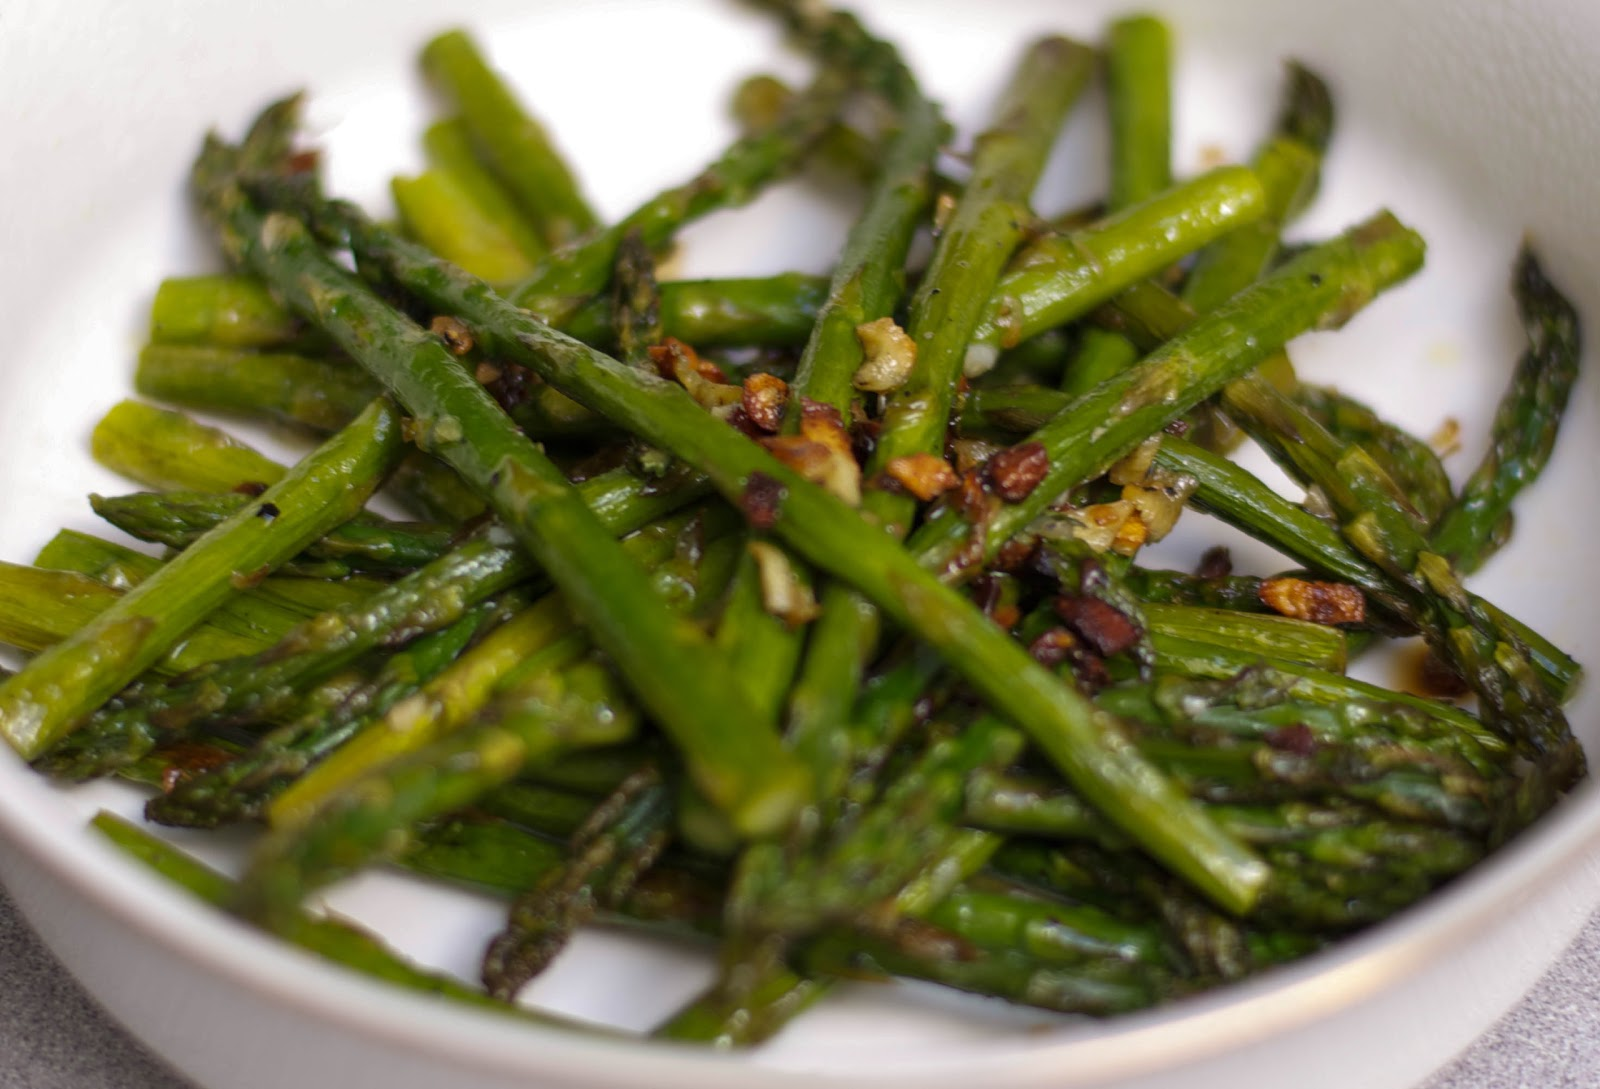 Carrie's Experimental Kitchen: Garlic Roasted Asparagus